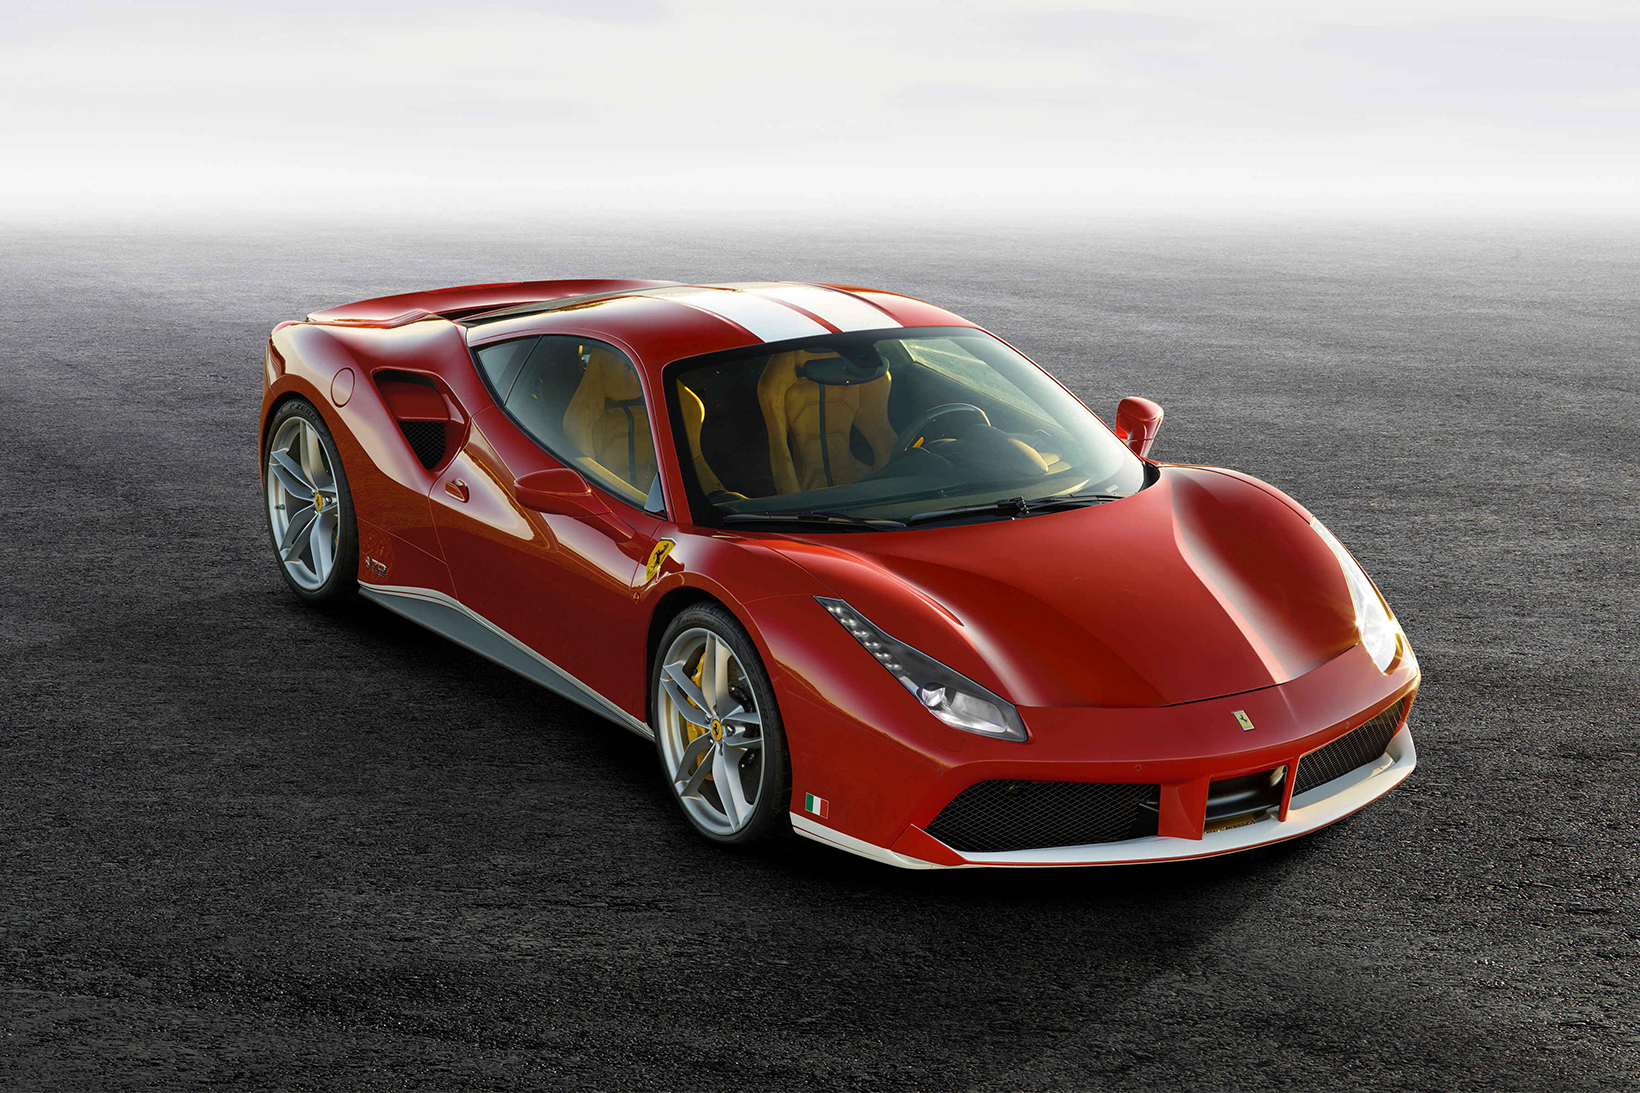 Ferrari Celebrates Its 70th Anniversary With Special Edition Liveries